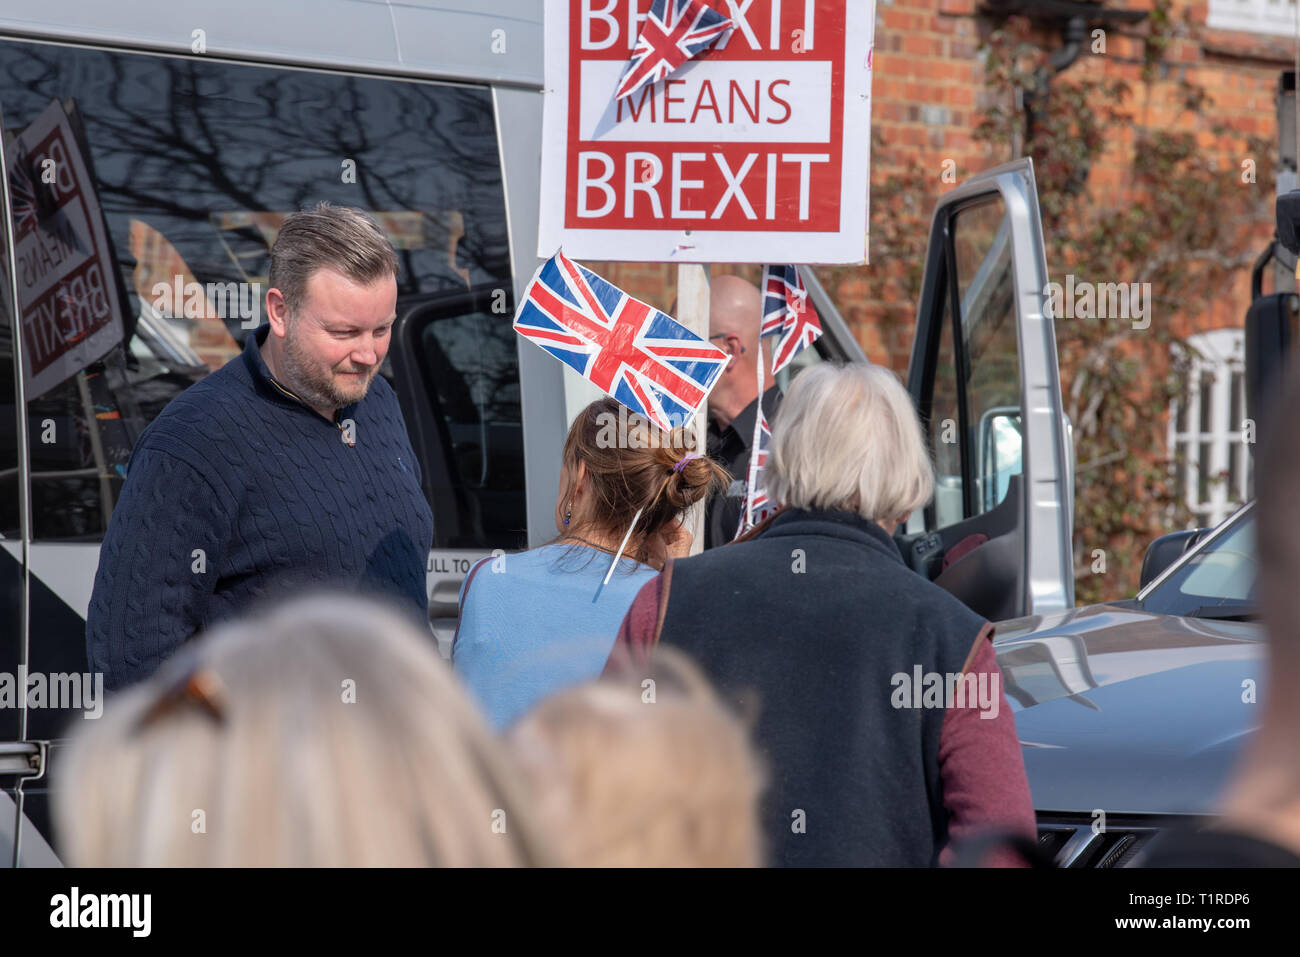 Buckinghamshire, United Kingdom. 28 March 2019. The pro Brexit campaign 'March for Leave' makes it way through Buckinghamshire after setting off from Aylesbury led by Leave Means Leave chairman John Longworth. Credit: Peter Manning/Alamy Live News Stock Photo